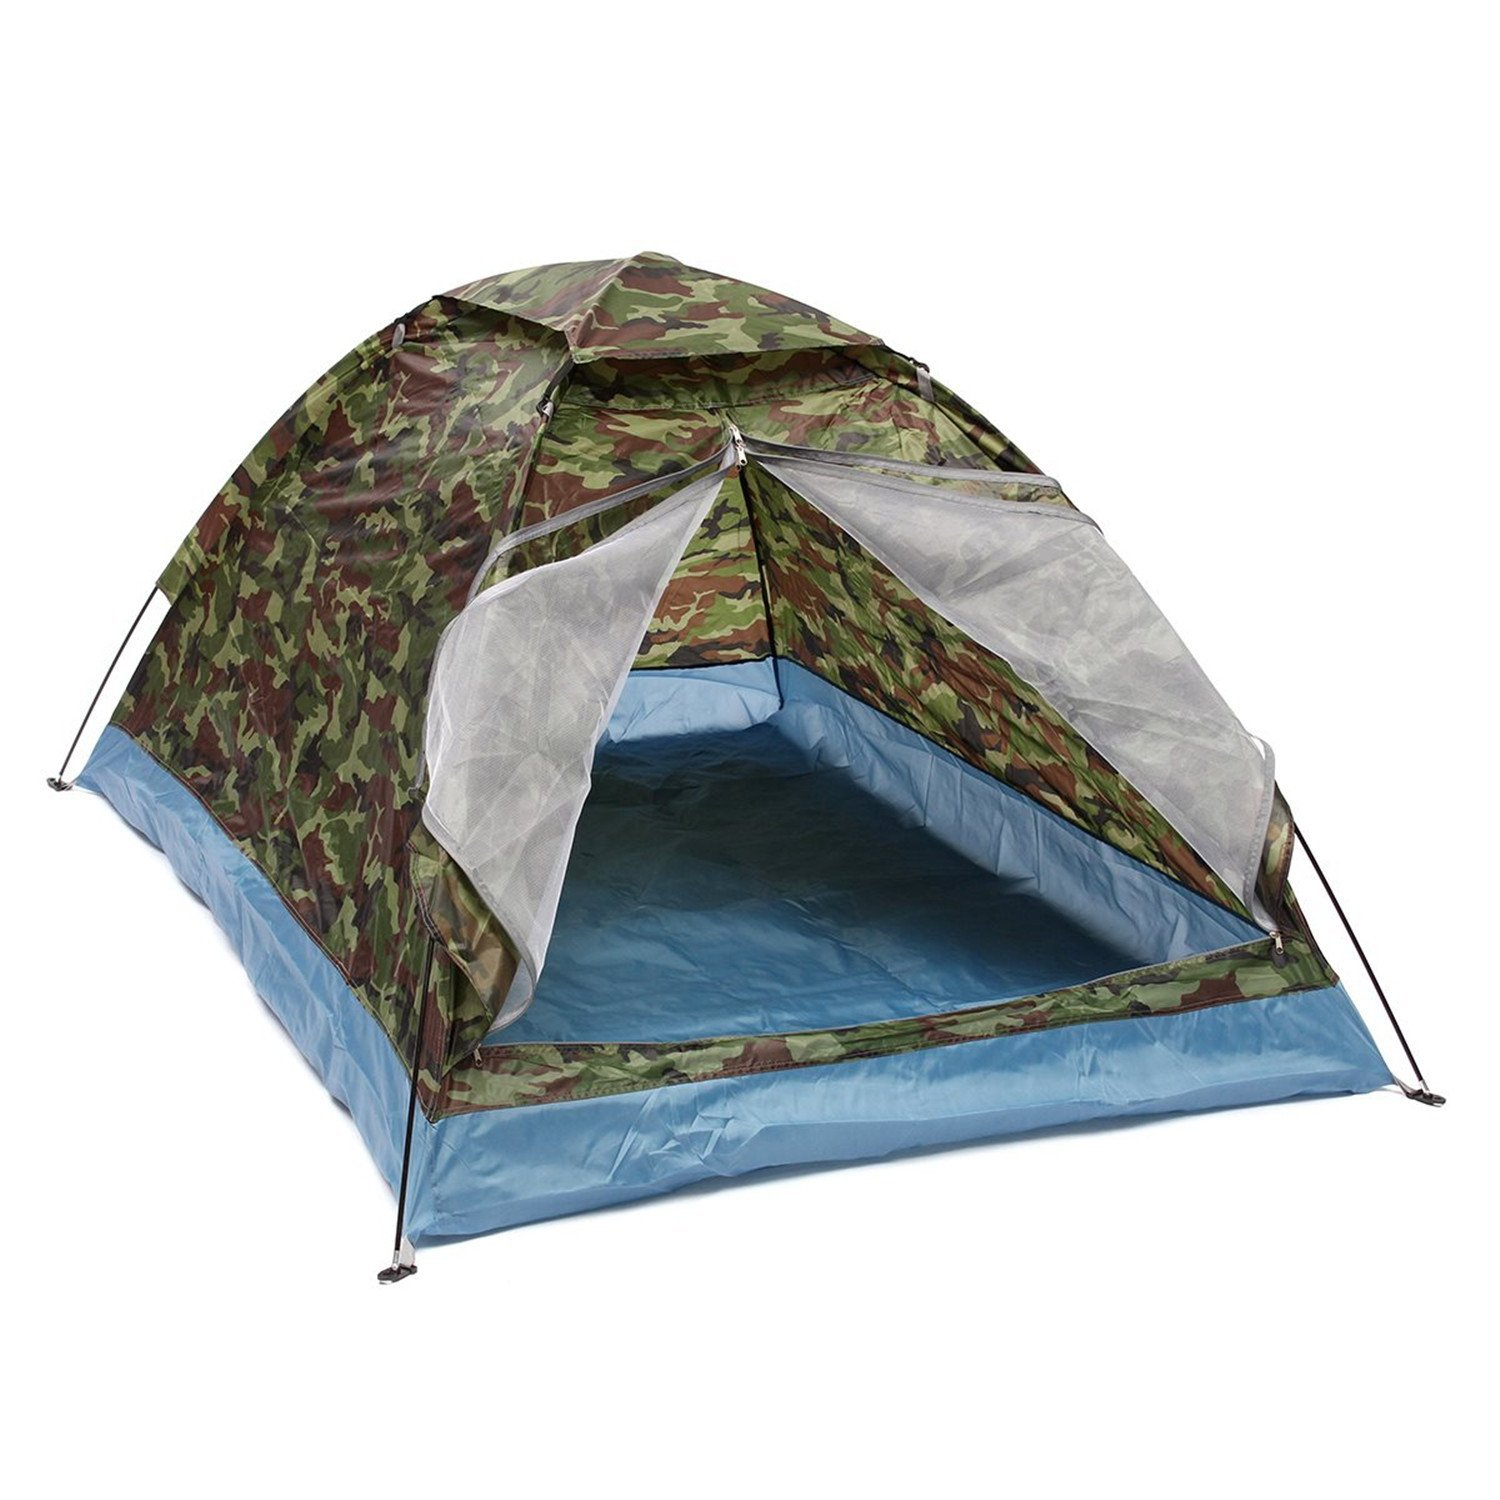 Nutsima Outdoor 200140110cm Oxford cloth PU waterproof coating 4 seasons 2 people single layer Camouflage camping hiking tent